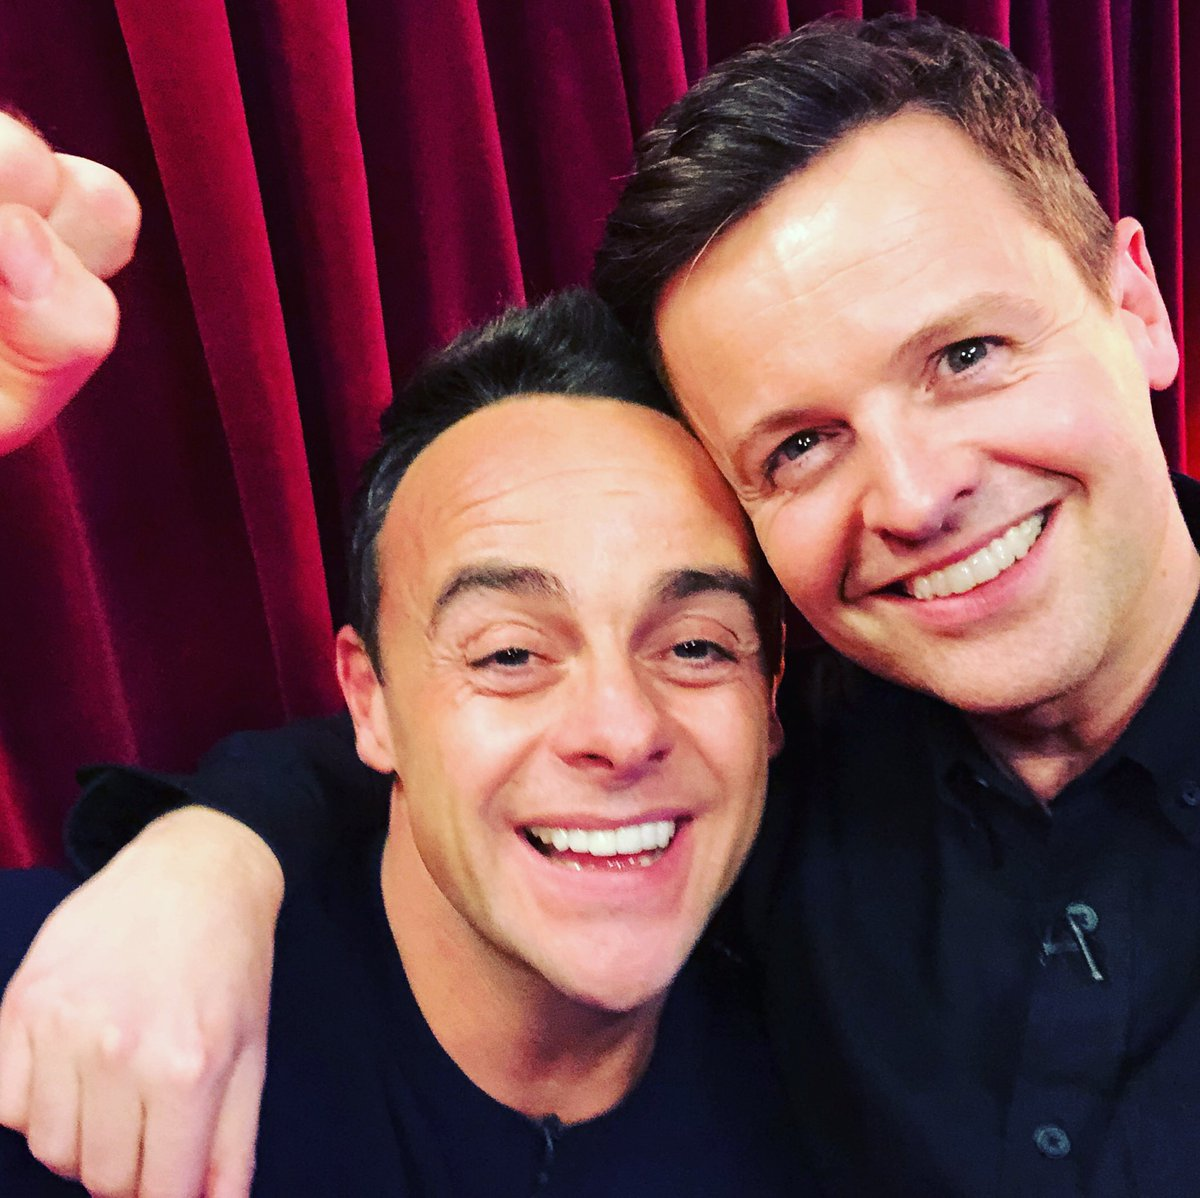 Thank you doesn't seem to cover it this year. We are humbled and honoured. We are so appreciative of your continued support and good wishes, they are never taken for granted. Thank u again. Now back to #BGT auditions! D x  #NTAs